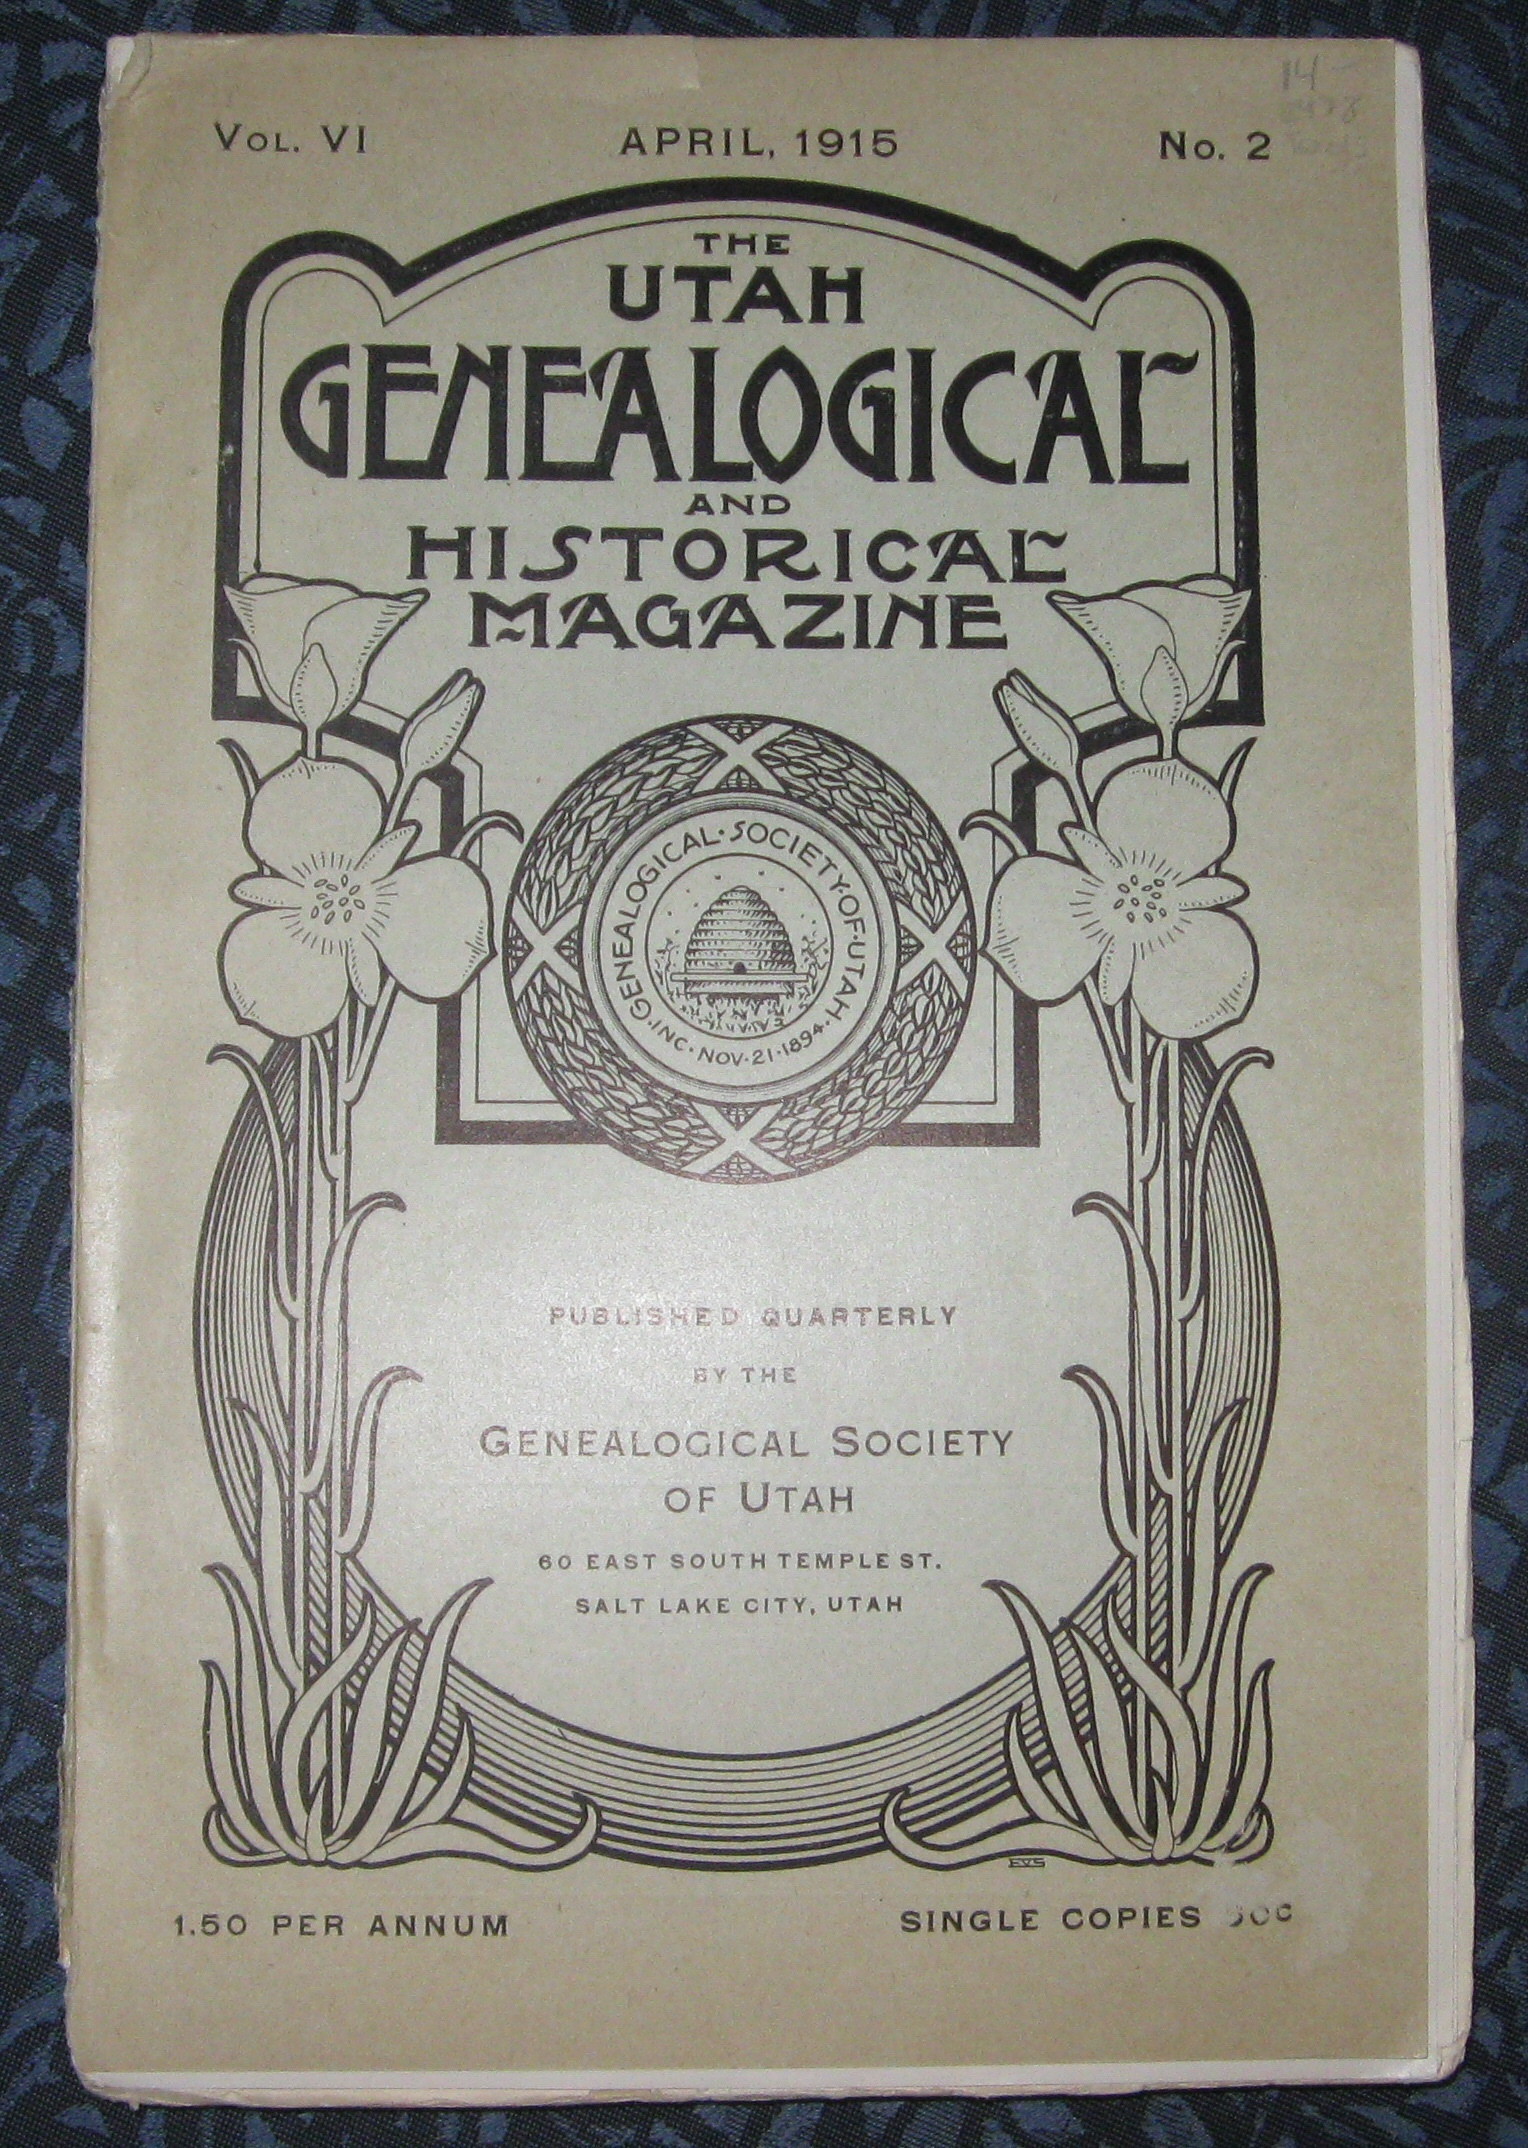 Image for The Utah Genealogical and Historical Magazine Vol. VI April, 1915 No. 2 -